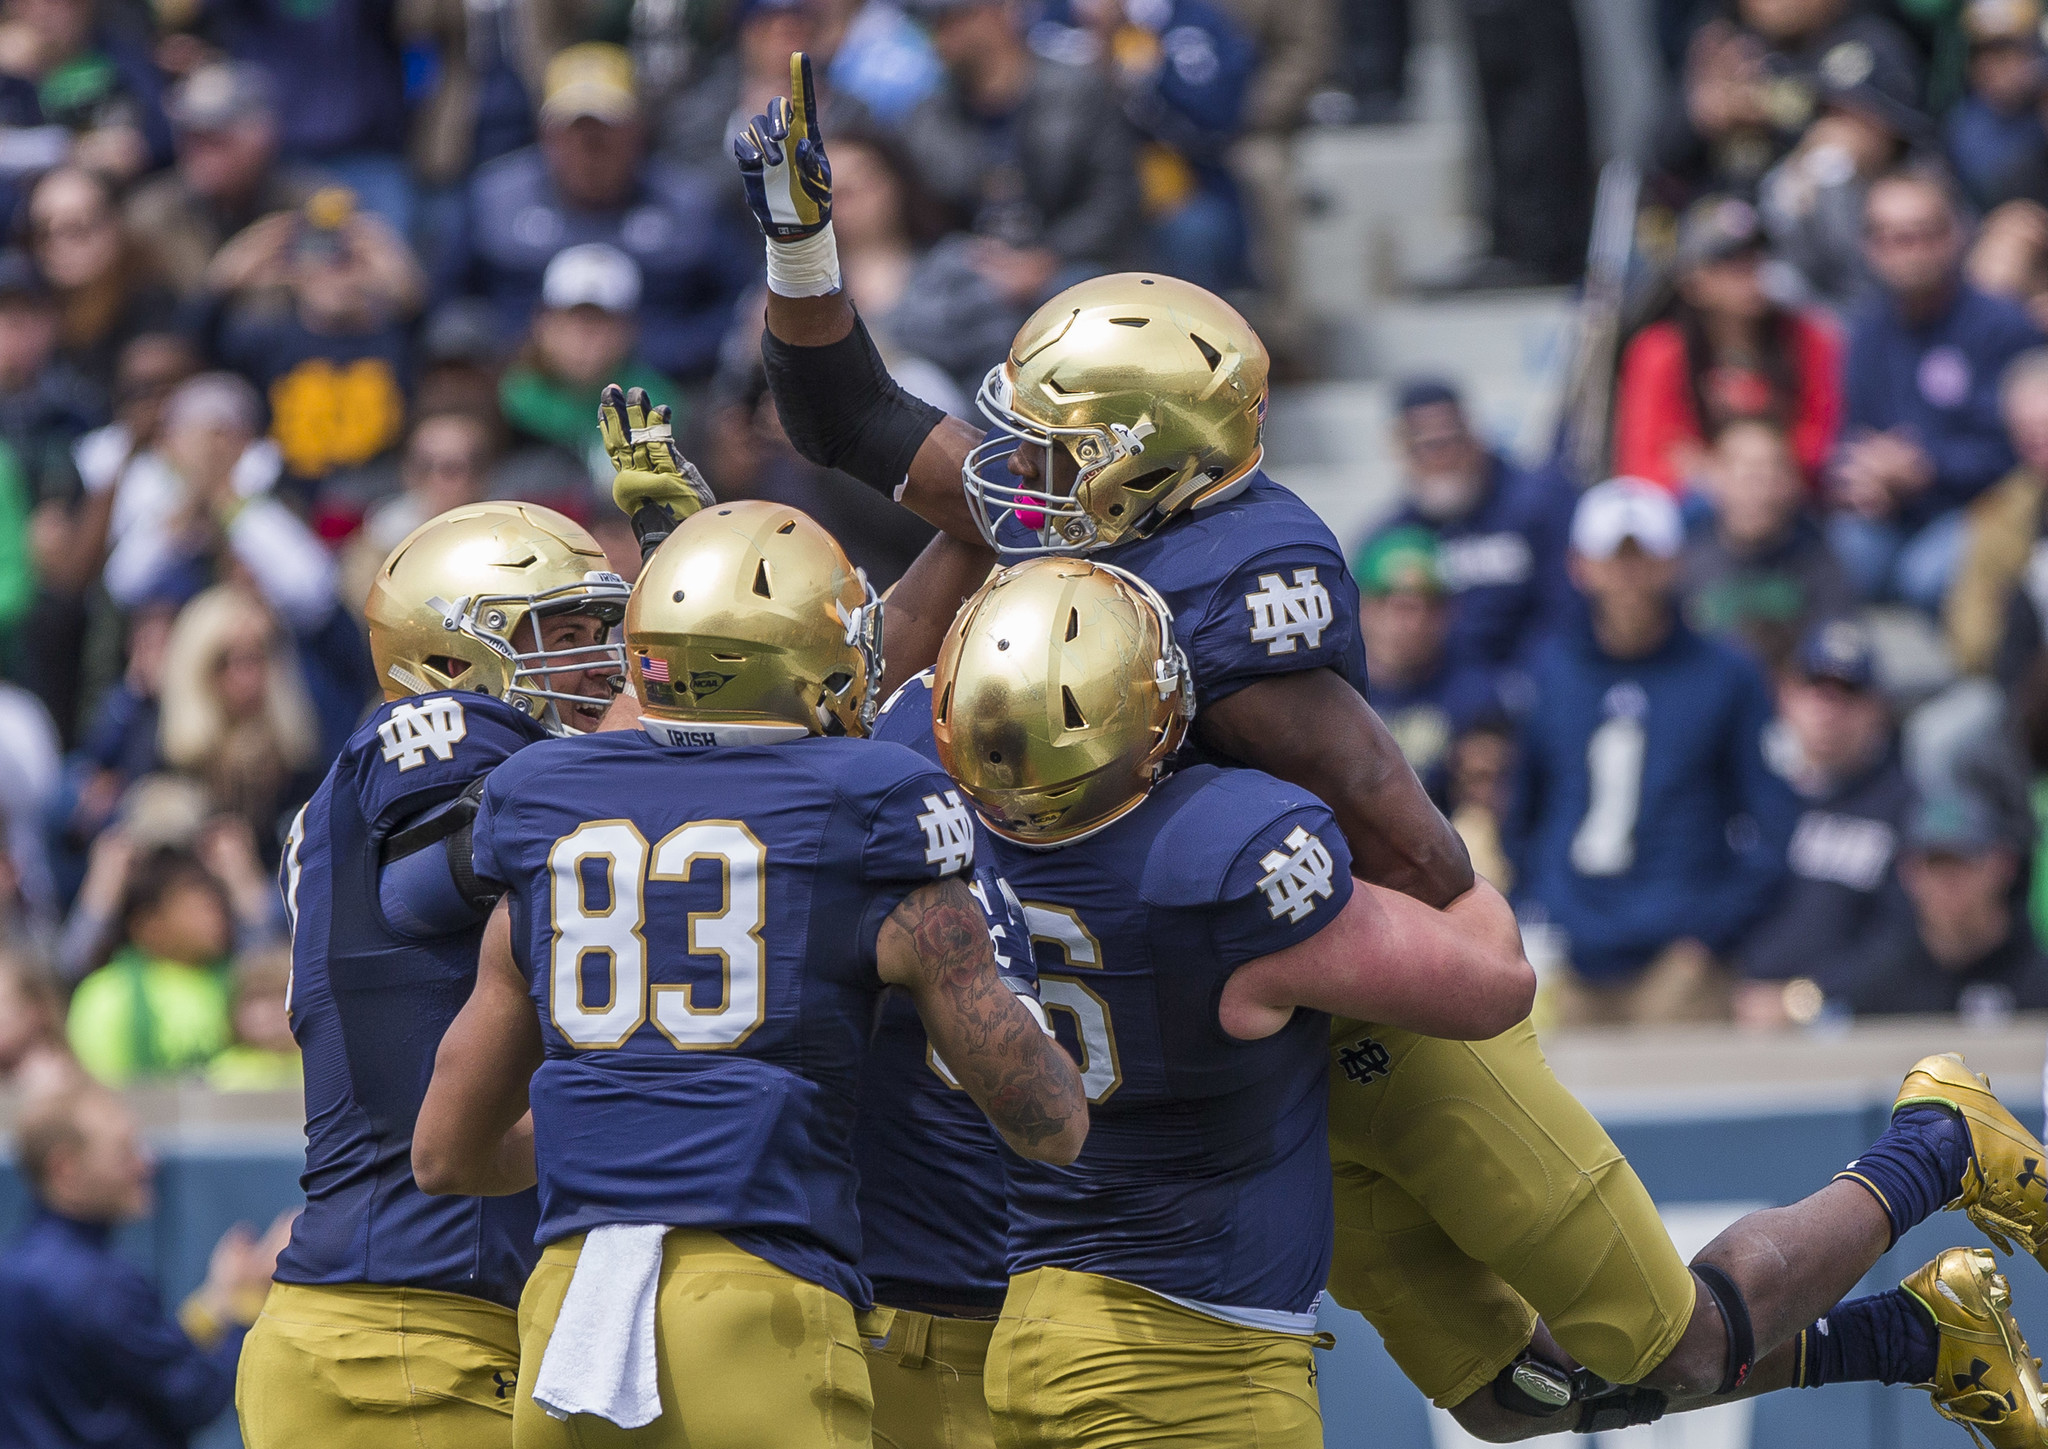 Ct-notre-dame-football-blue-gold-spt-0423-20170422